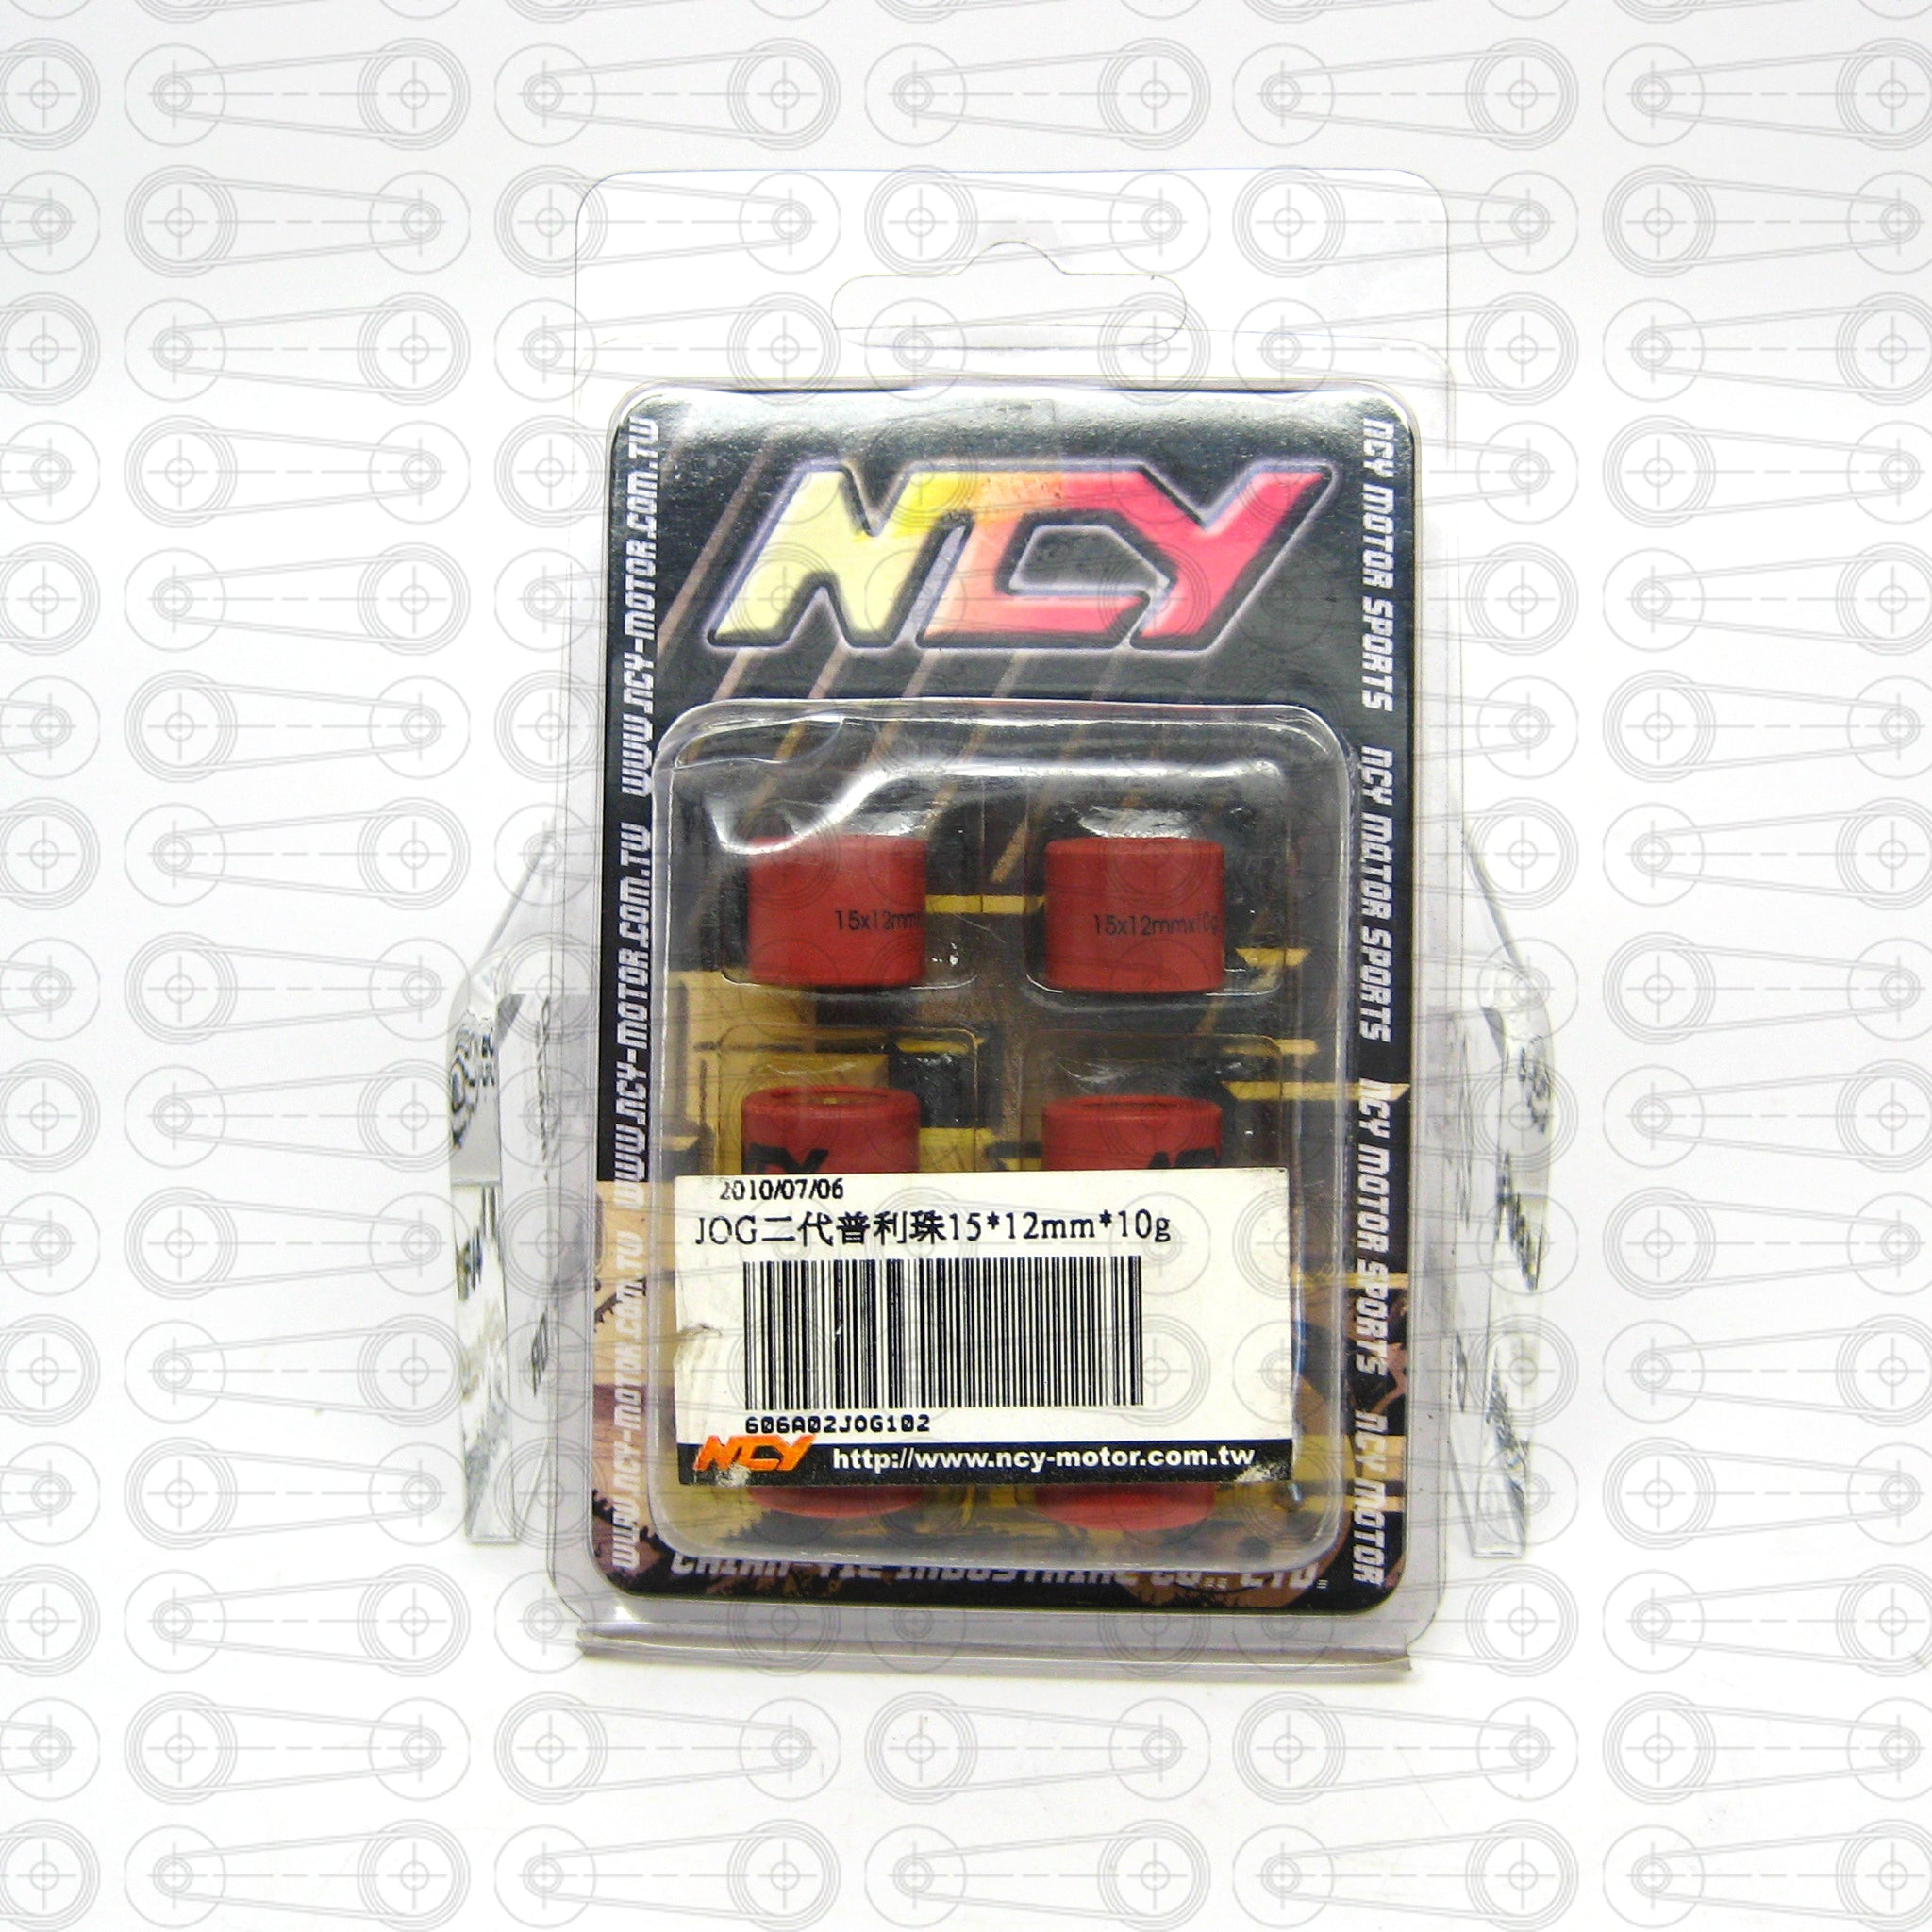 NCY - ROLLER WEIGHTS (JOG)